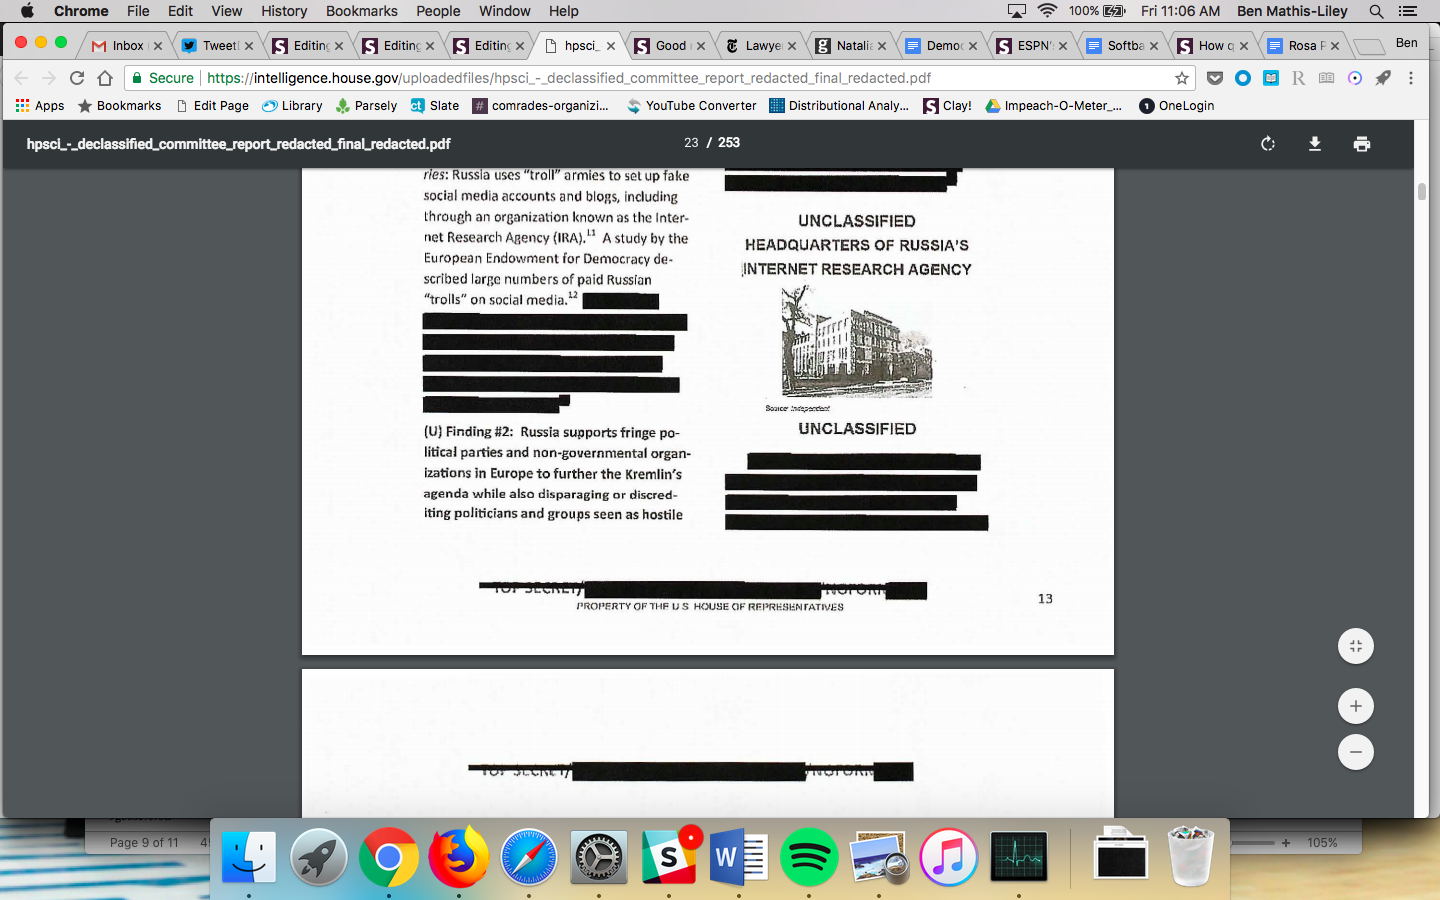 """A blurry black and white image of a building labeled """"Headquarters of Russia's Internet Research Agency."""""""